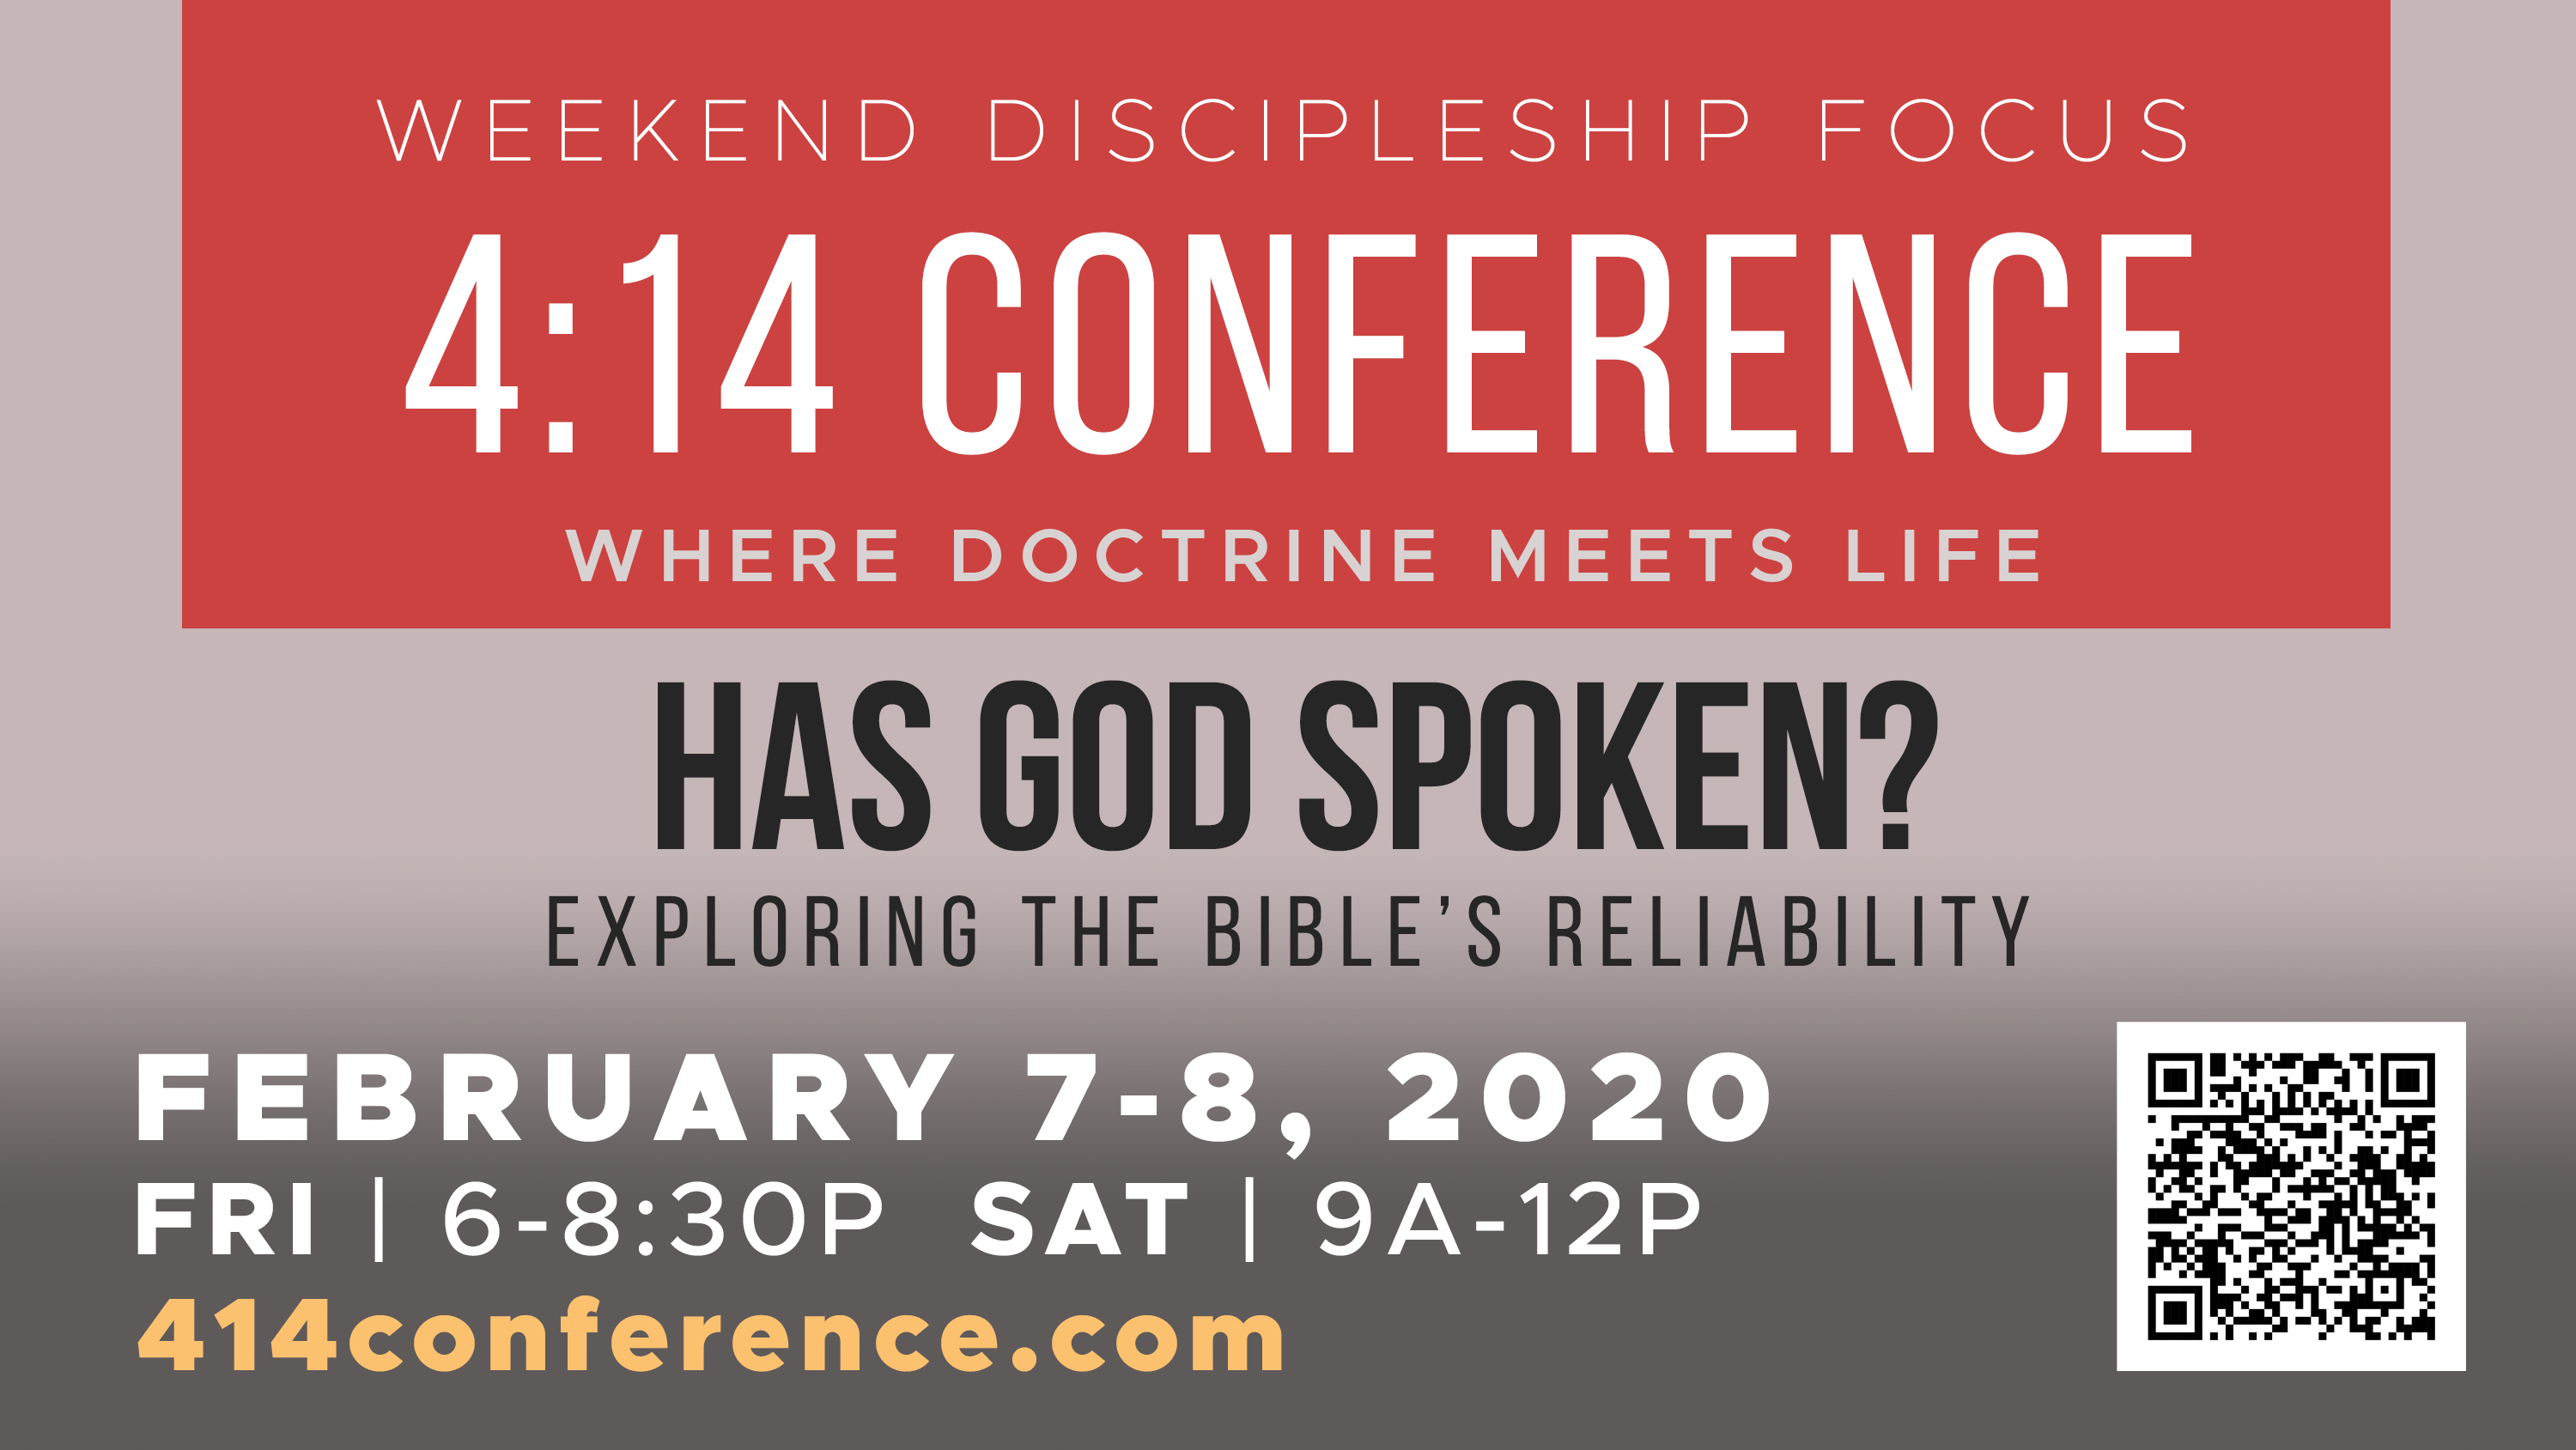 8.3  4-14 Conference ad